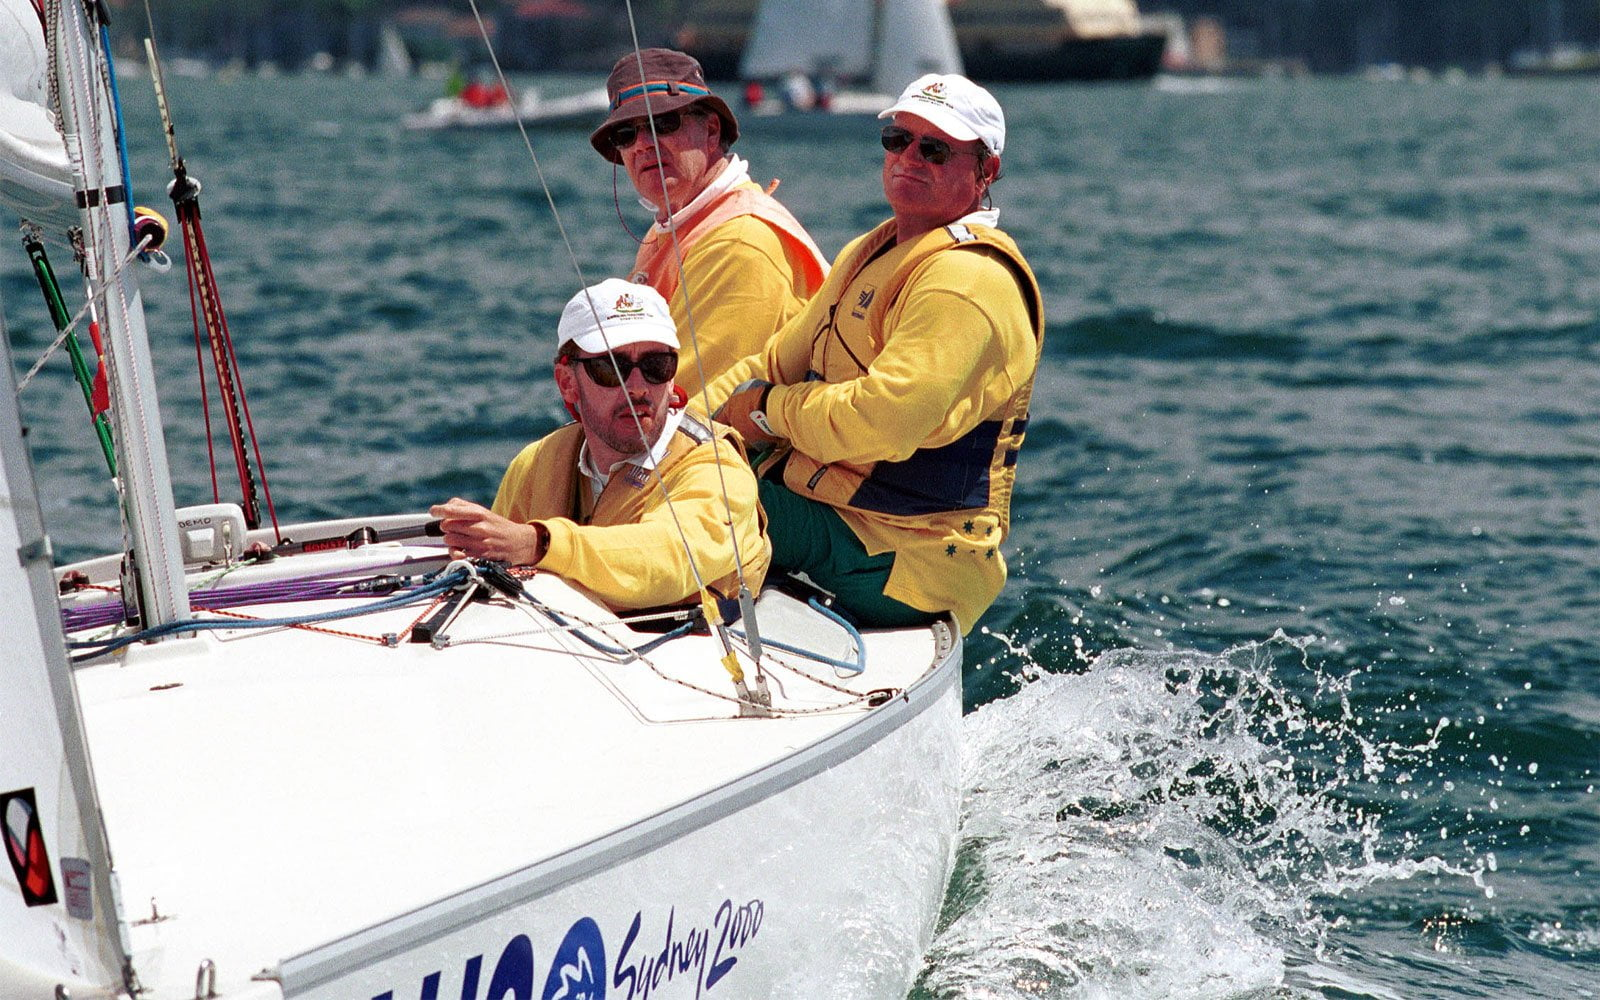 Robins, Dunross and Martin named in Australian Sailing Hall of Fame